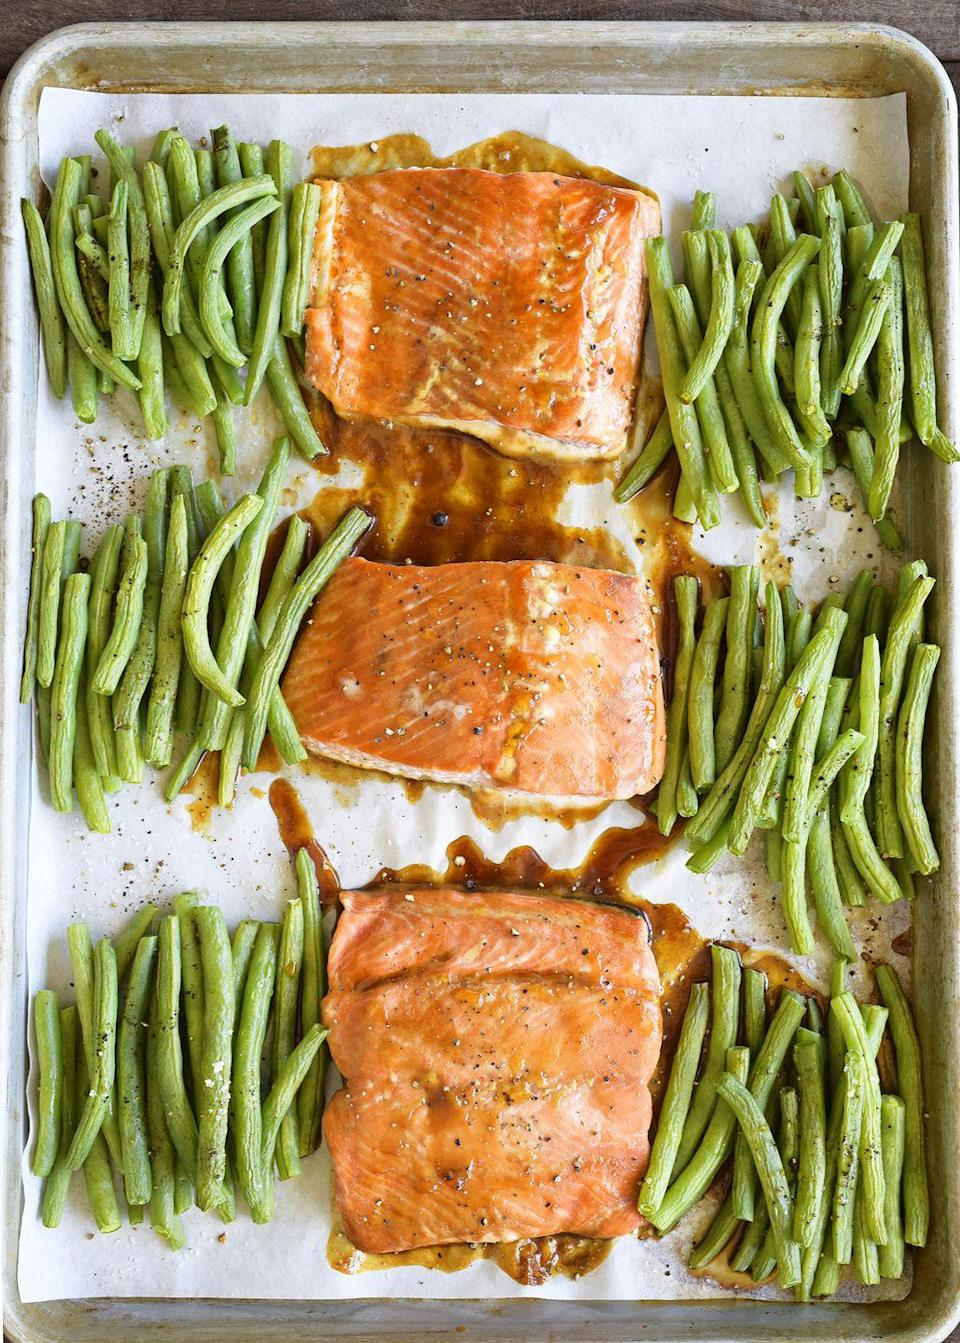 "<p>When it comes to sheet pan dinners, salmon is the new chicken. </p><p>Get the recipe from <a href=""https://www.delish.com/cooking/recipe-ideas/recipes/a53192/teriyaki-glazed-salmon-recipe/?visibilityoverride"" rel=""nofollow noopener"" target=""_blank"" data-ylk=""slk:Delish"" class=""link rapid-noclick-resp"">Delish</a>.</p>"